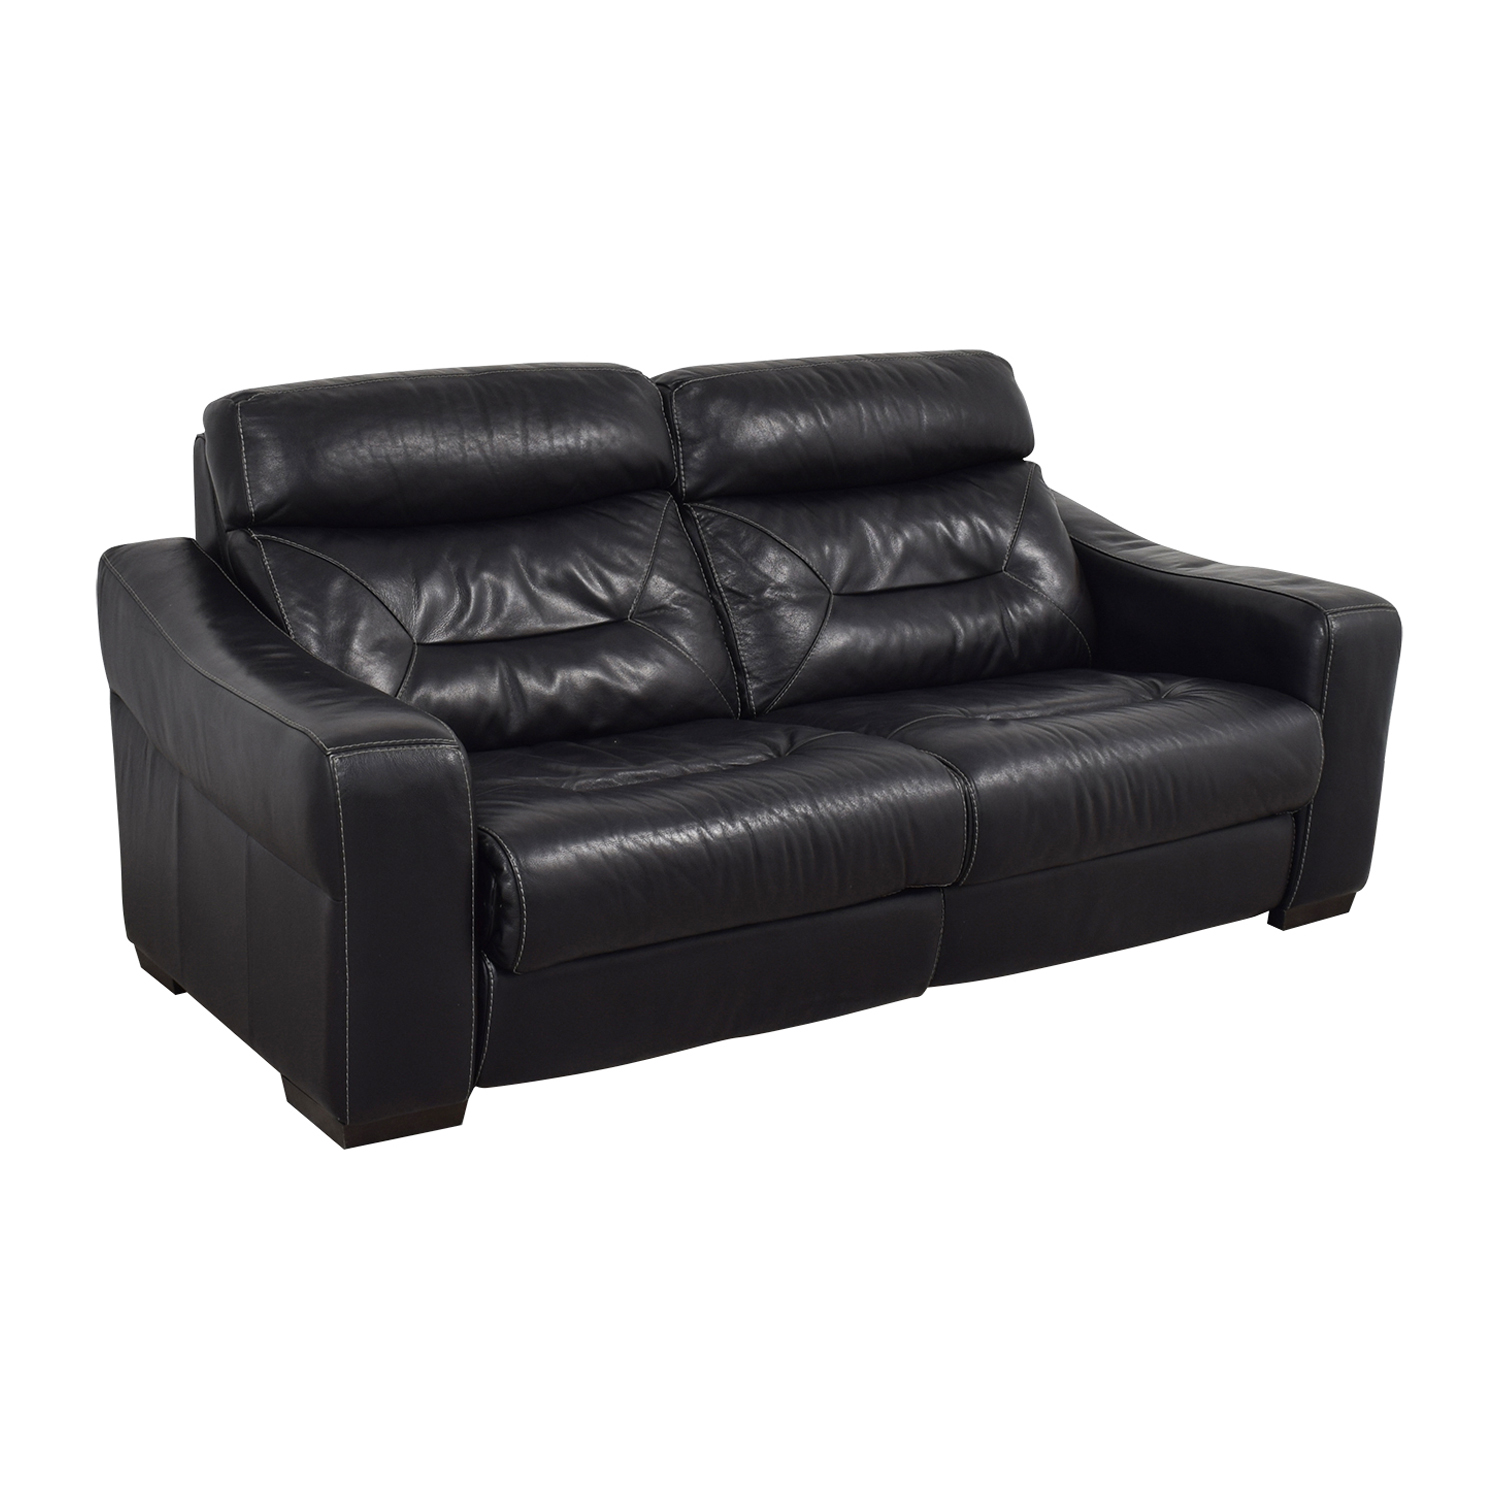 Macy's Macy's Black Leather Recliner Sofa Recliners